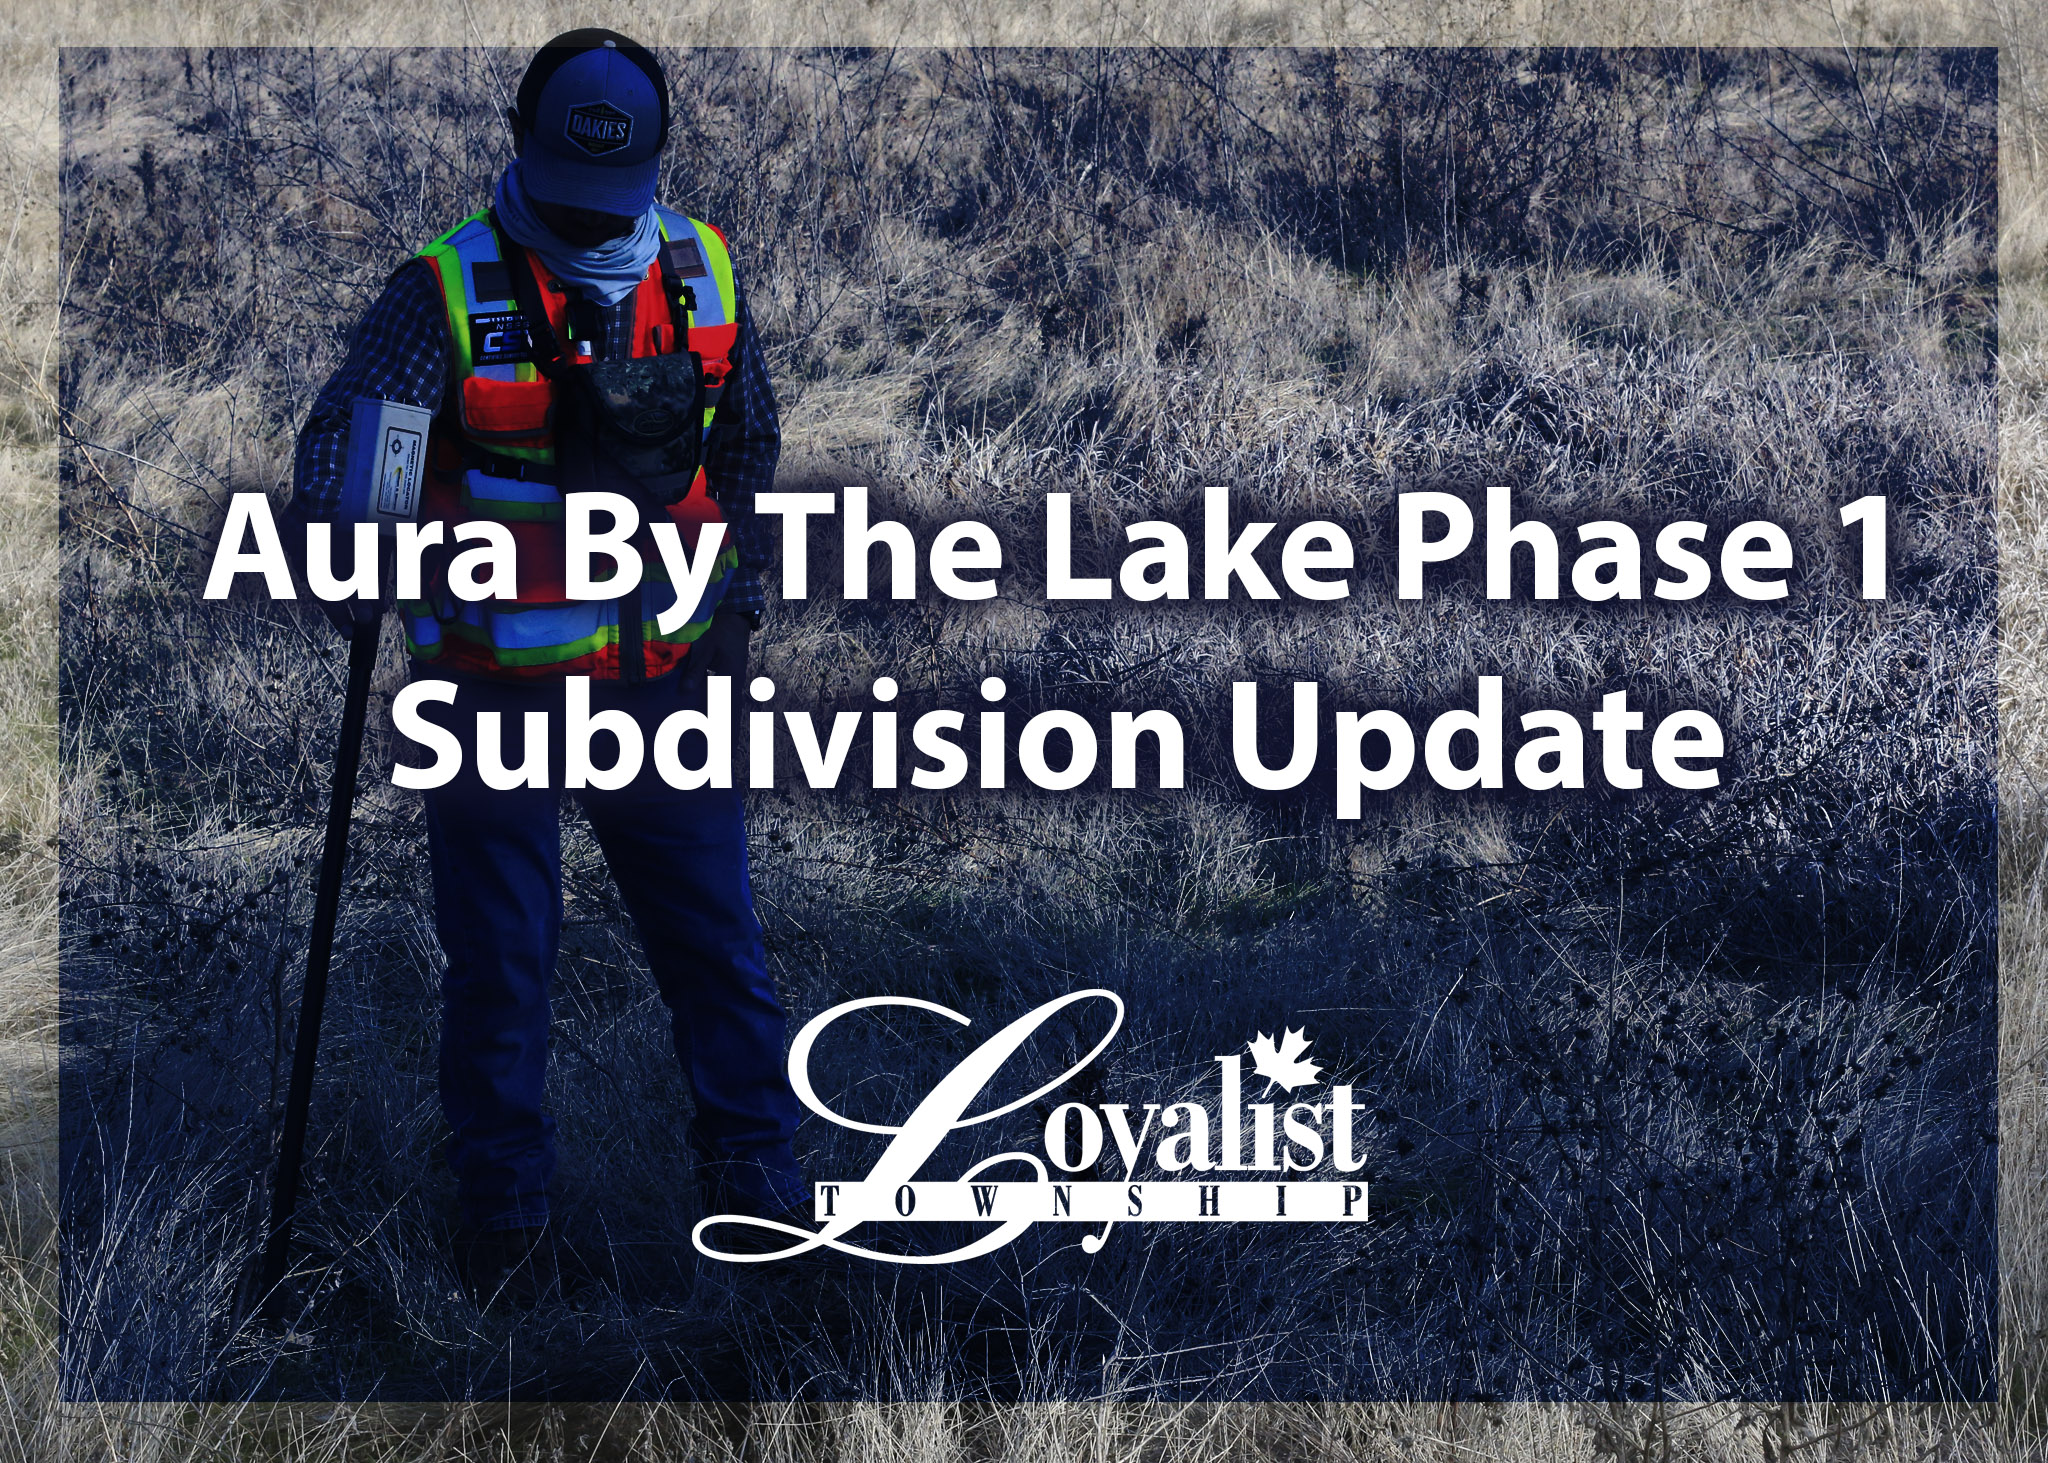 Photo of a man conducting survey work. Text overlay: Aura By the Lake Phase 1 Subdivision Update